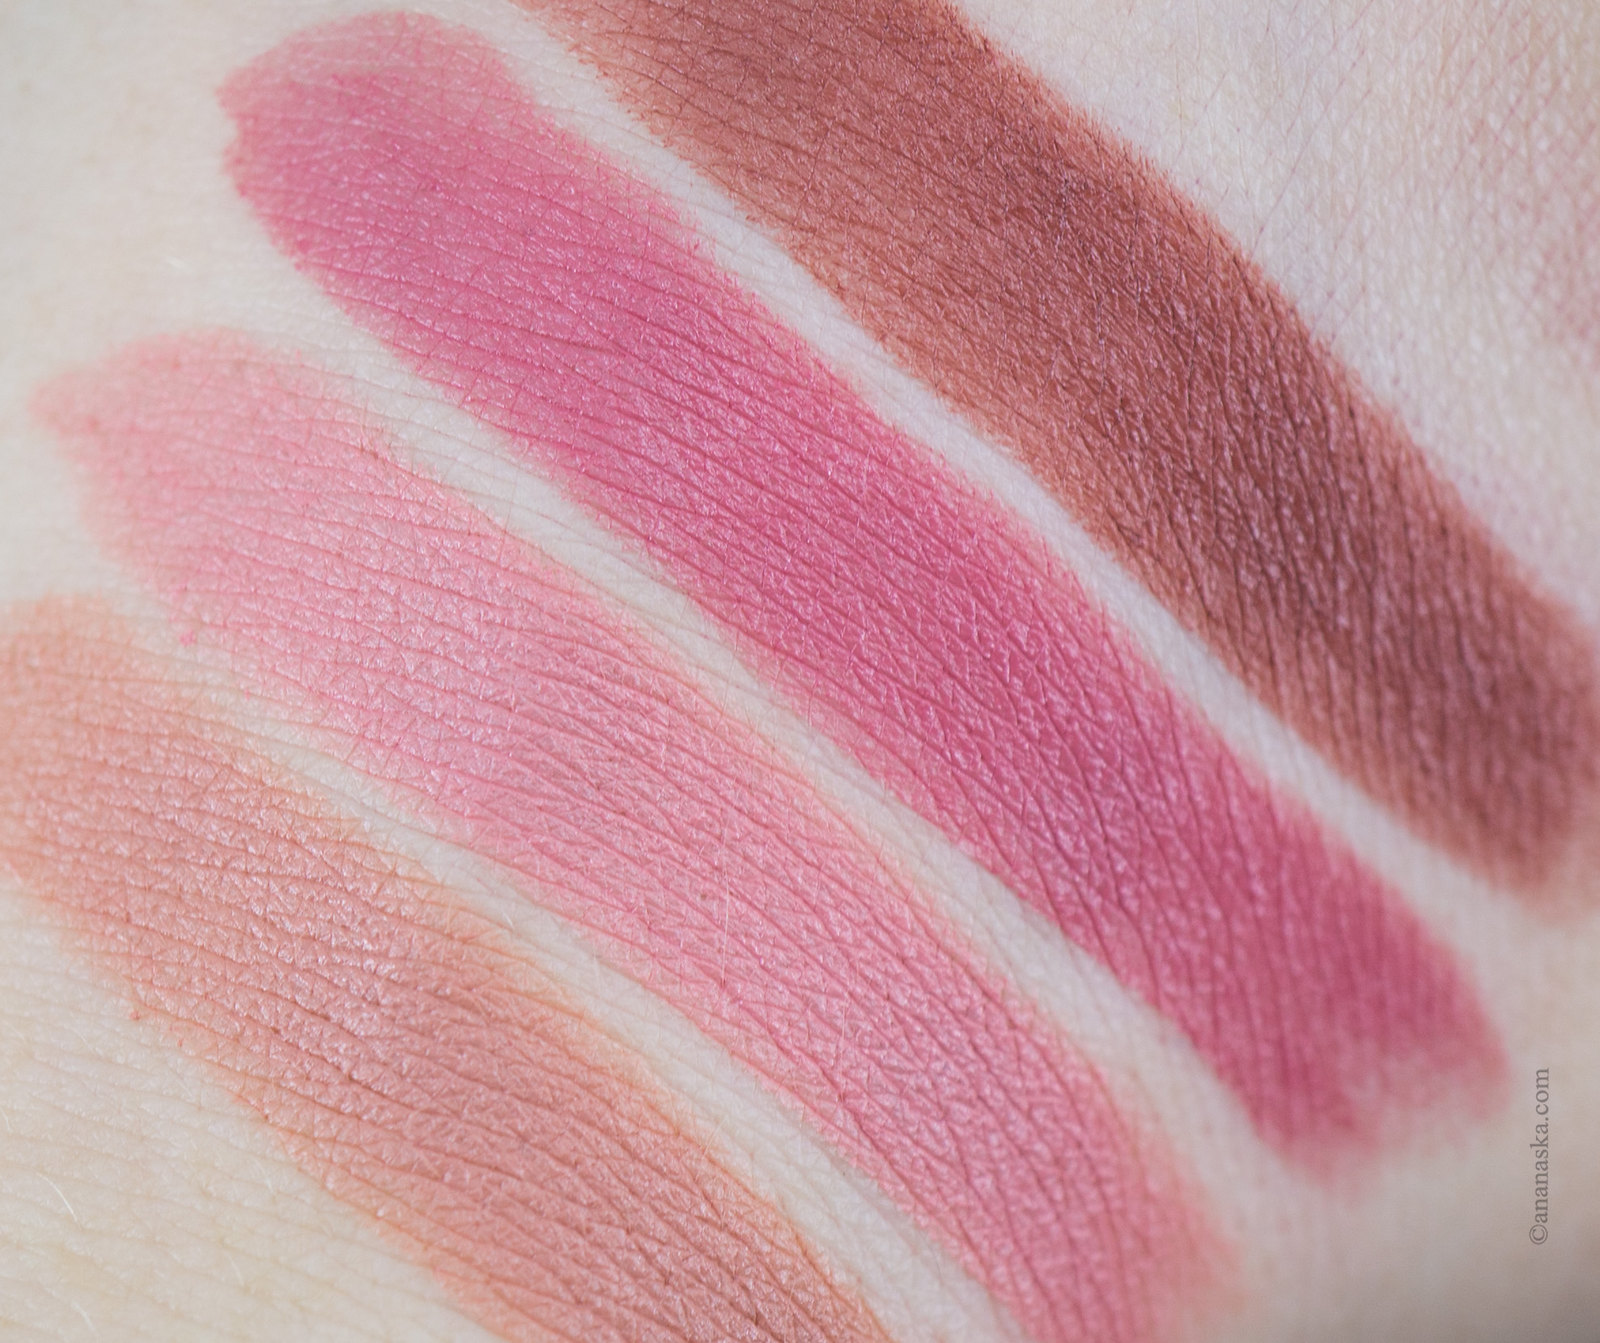 Maybelline Color Sensational Matte: 982 Peach Buff, 983 Beige Babe, 987 Smoky Rose, 988 Brown Sugar